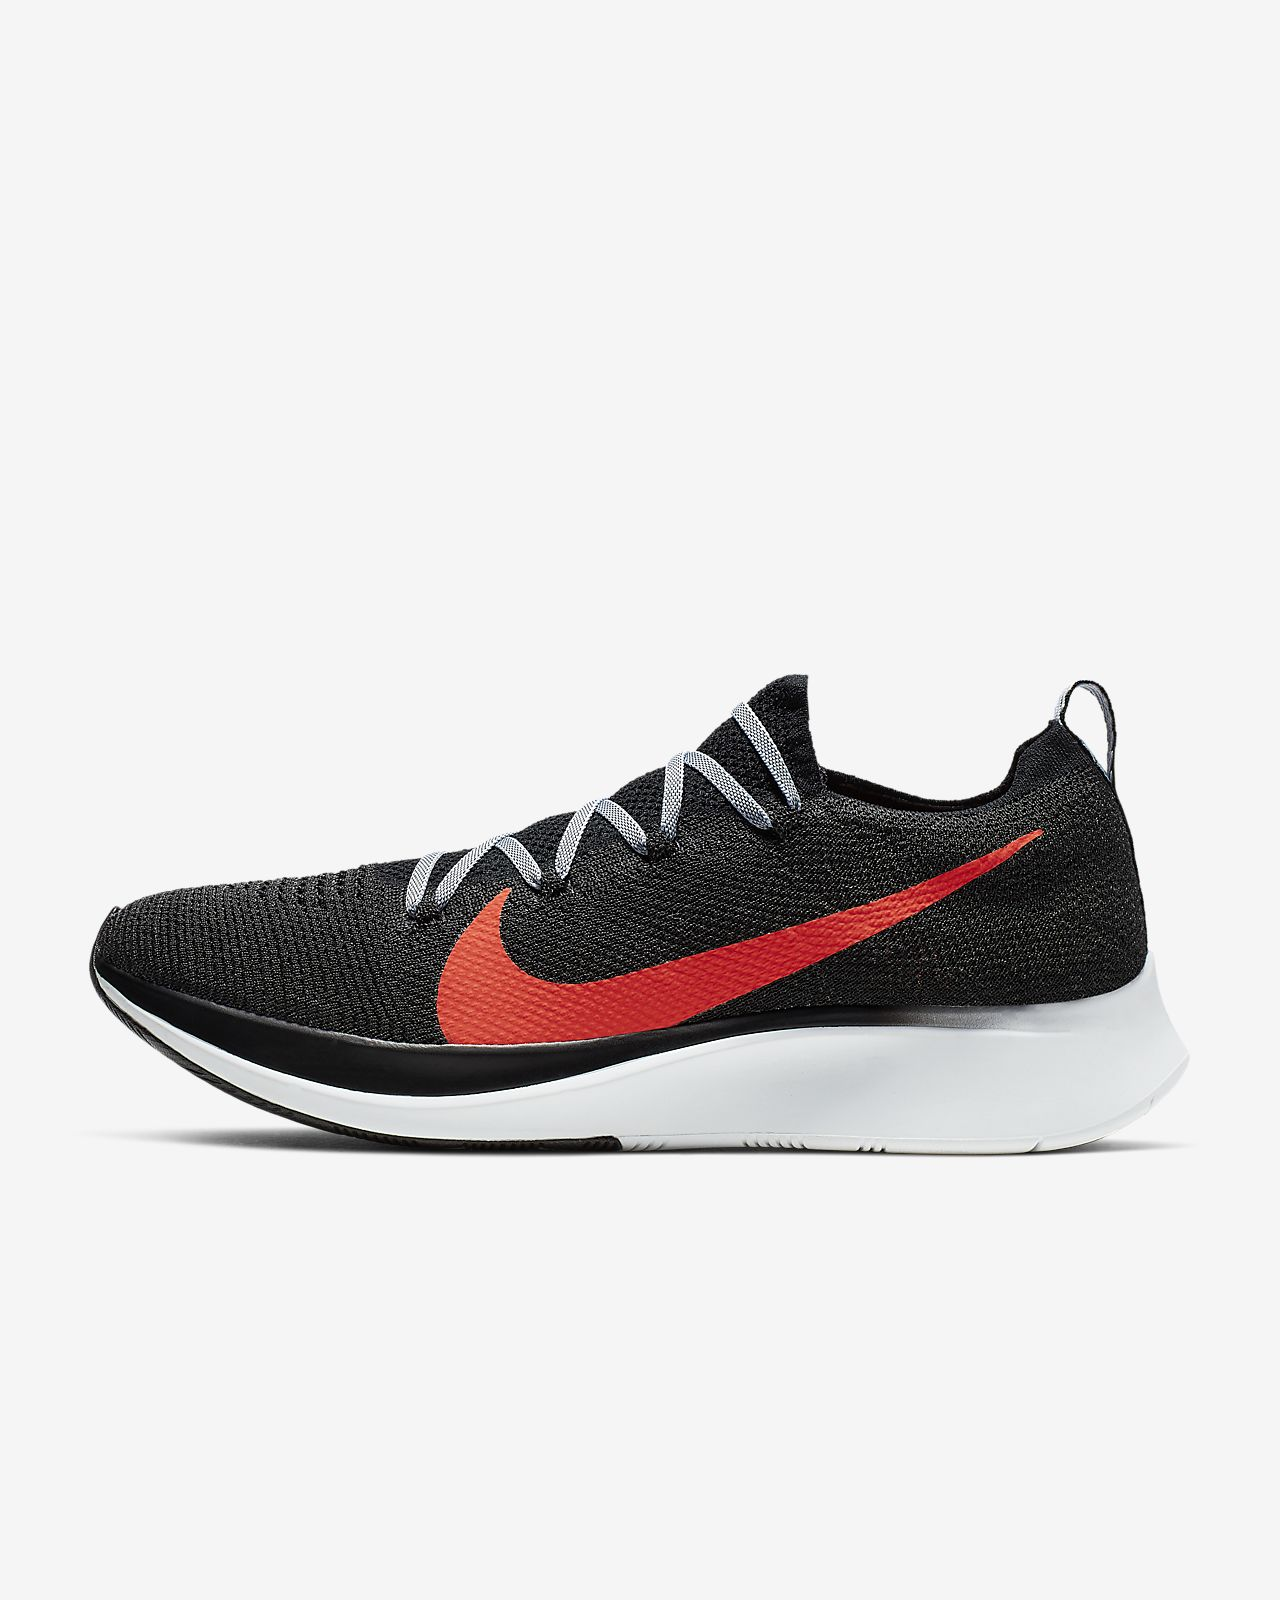 best service ace72 8ac21 Men s Running Shoe. Nike Zoom Fly Flyknit